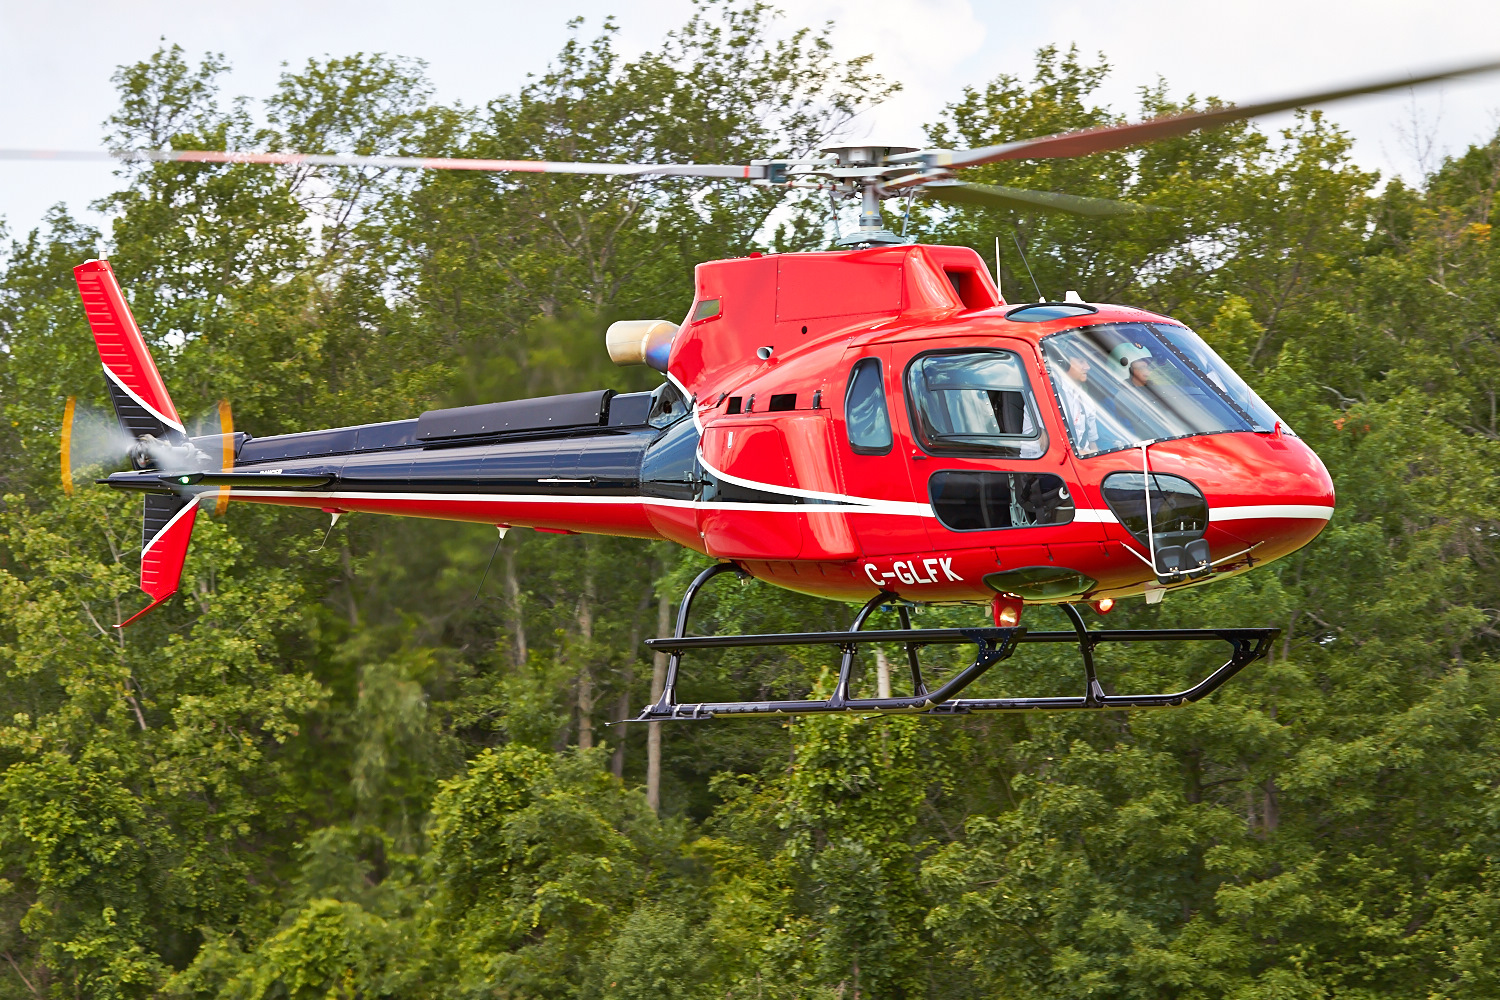 Derazona Helicopters AS350 B3e